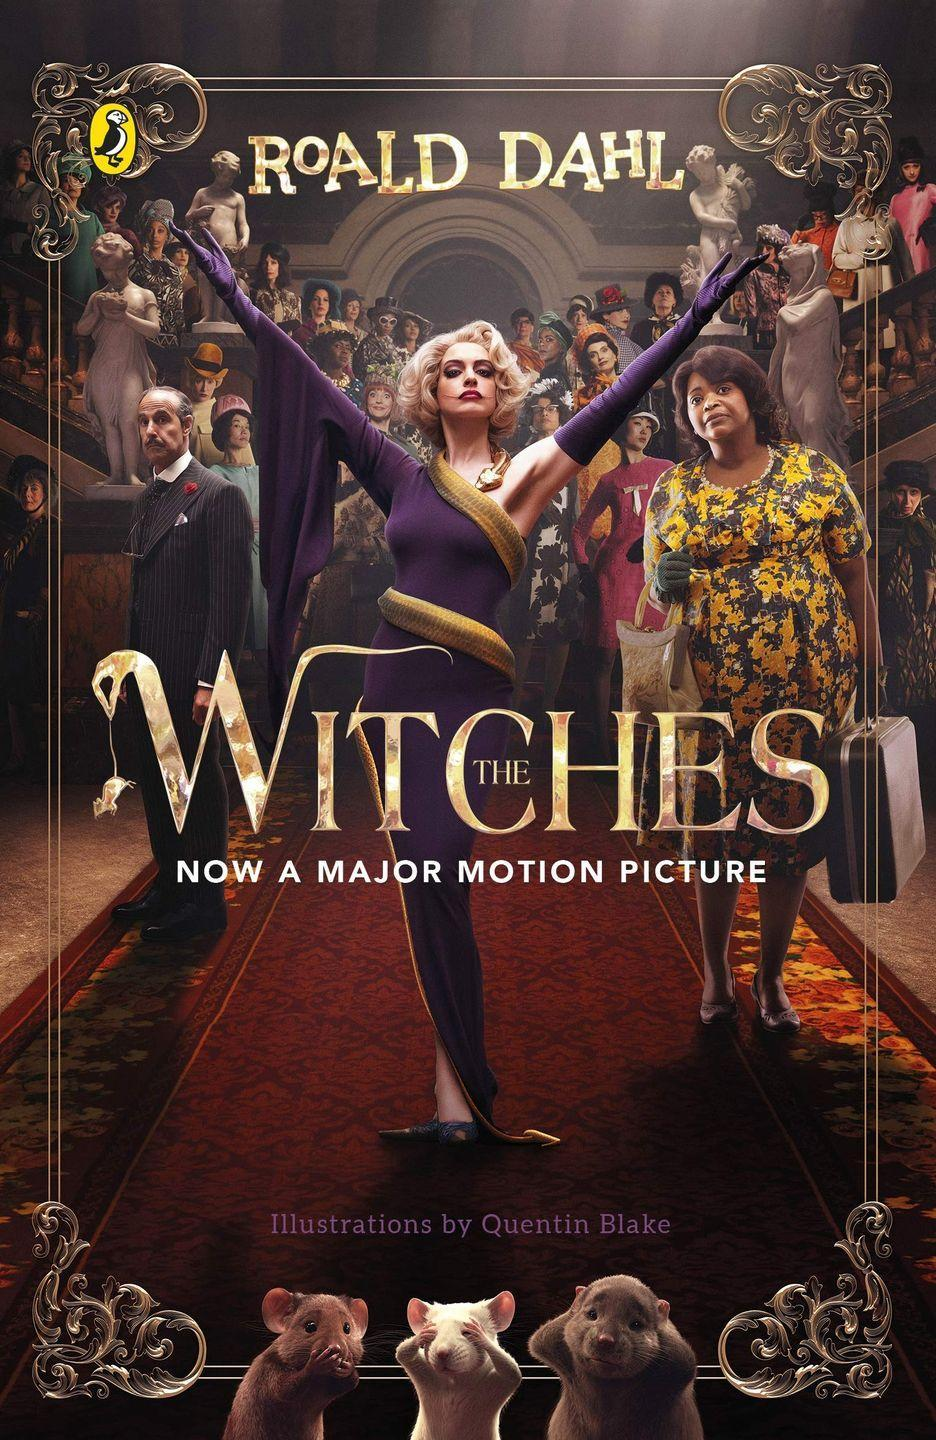 <p>A young boy uncovers a group of diabolical witches who plan to turn children into mice when he goes to live with his aunt after the death of his parents.</p>